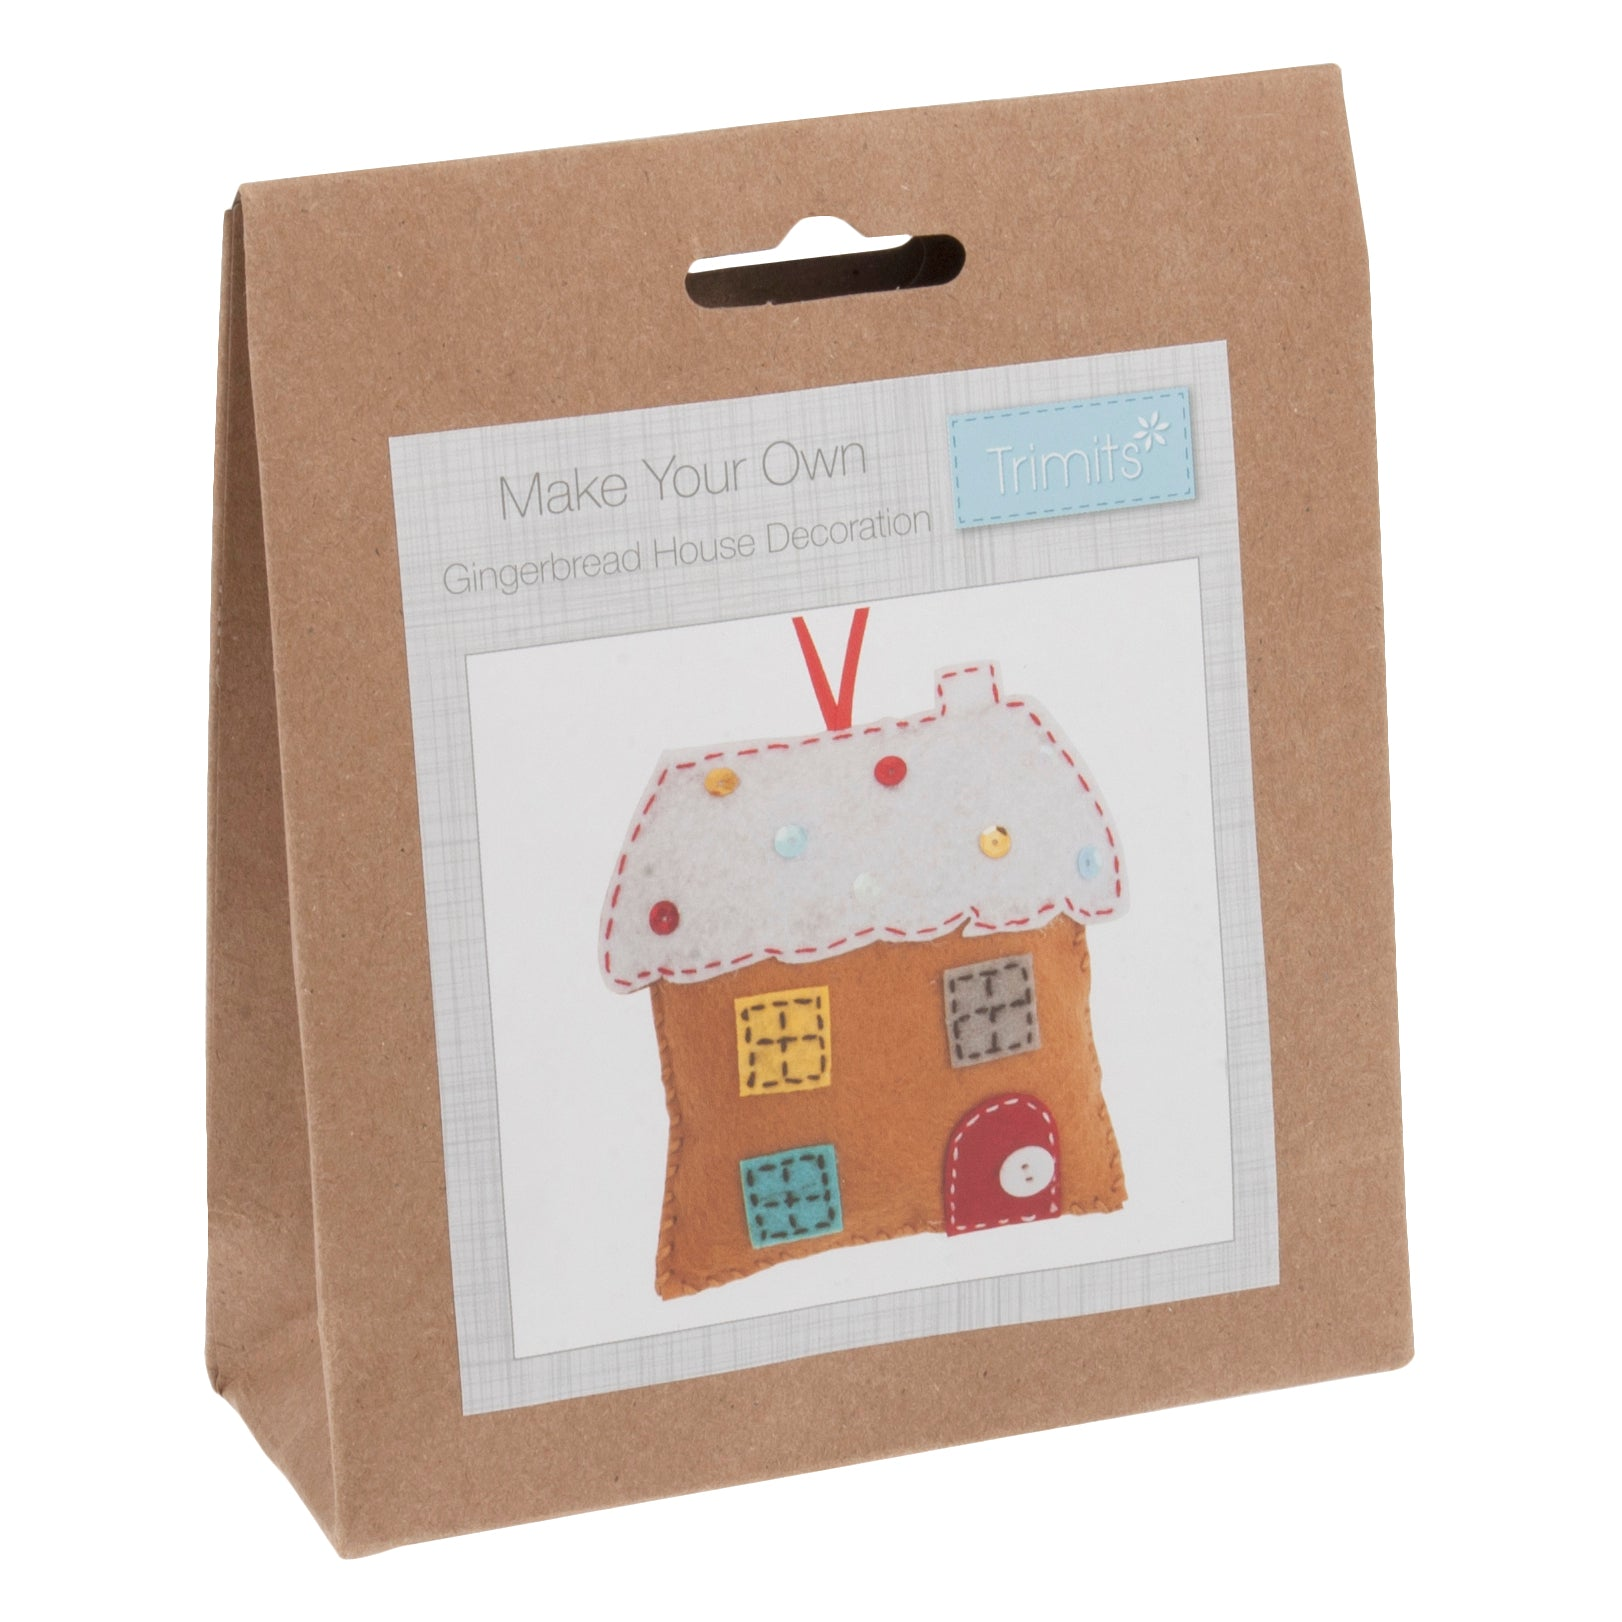 Felt Gingerbread House Kit, Make Your Own Xmas Gingerbread House, GCK027 - Fabric and Ribbon